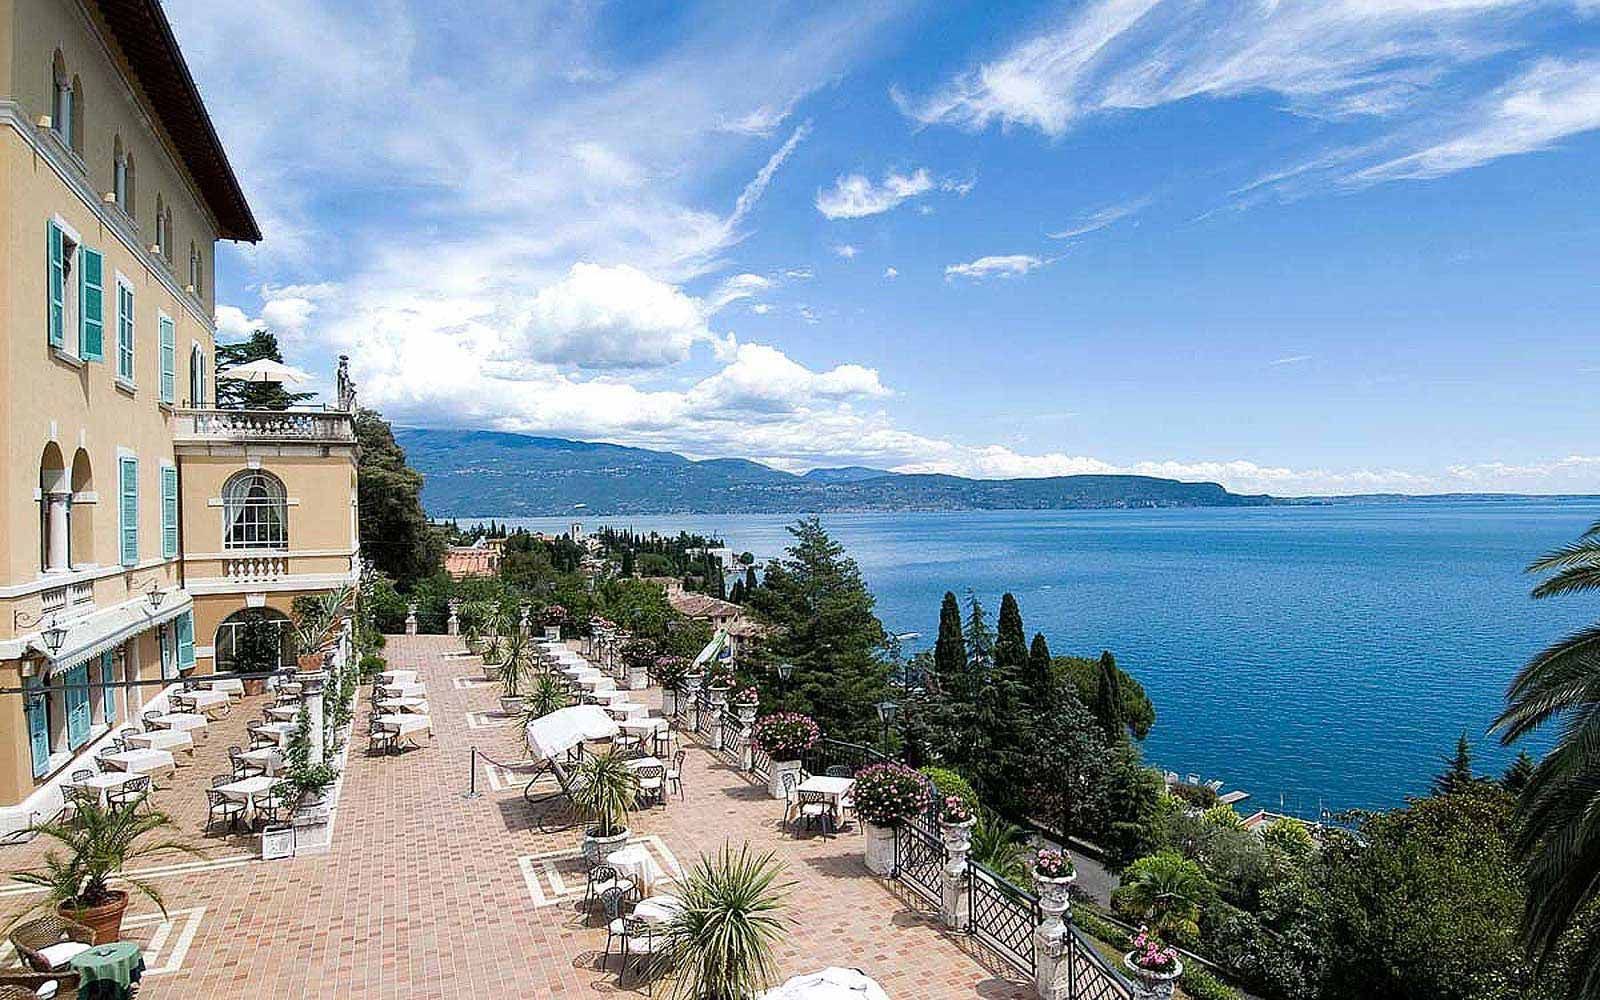 Hotel Villa Del Sogno: room / property / locale photo. Image 20